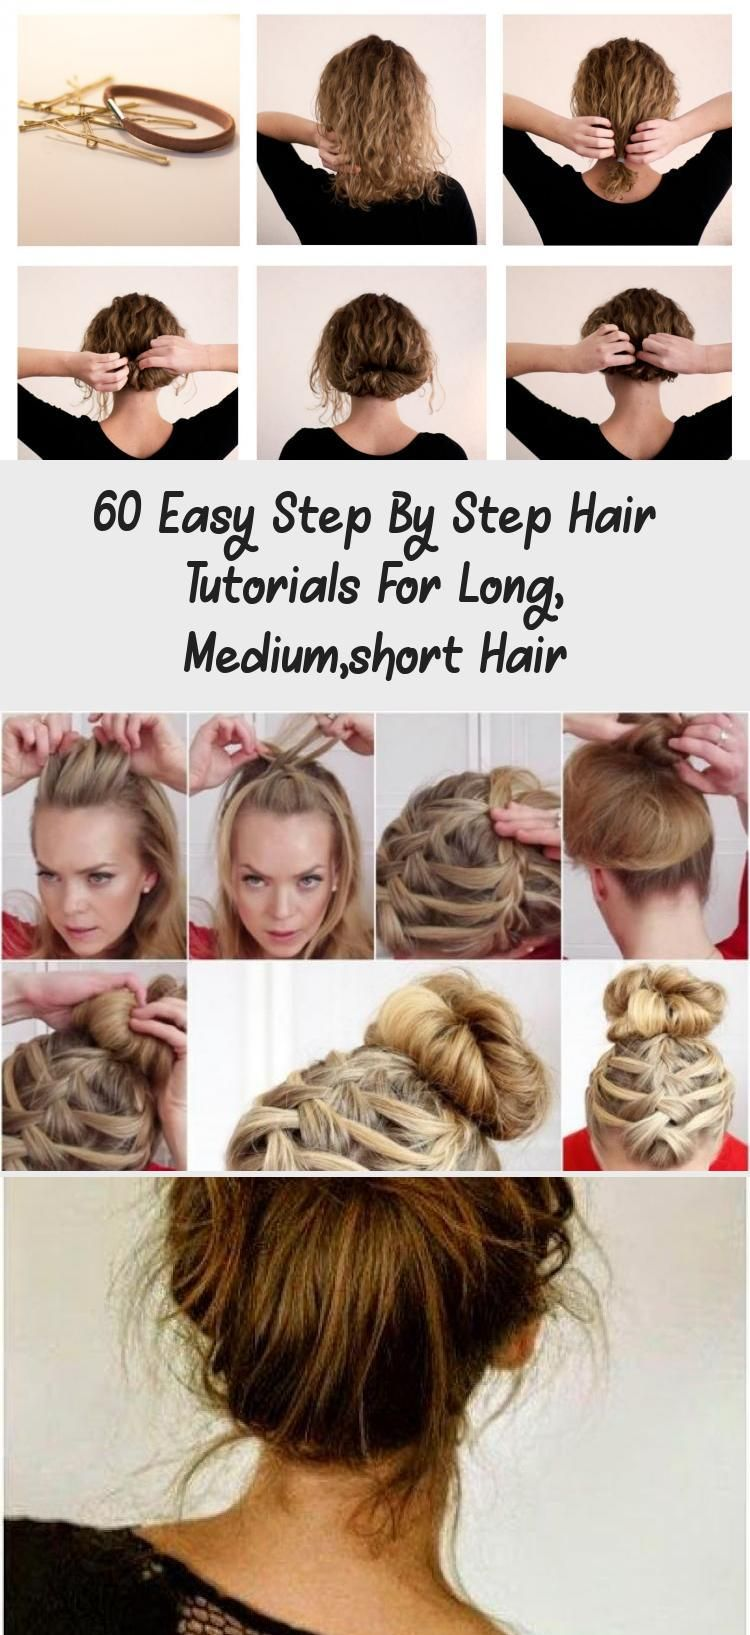 60 Easy Step By Step Hair Tutorials For Long, Medium,short Hair - Hair Care #bunupdo